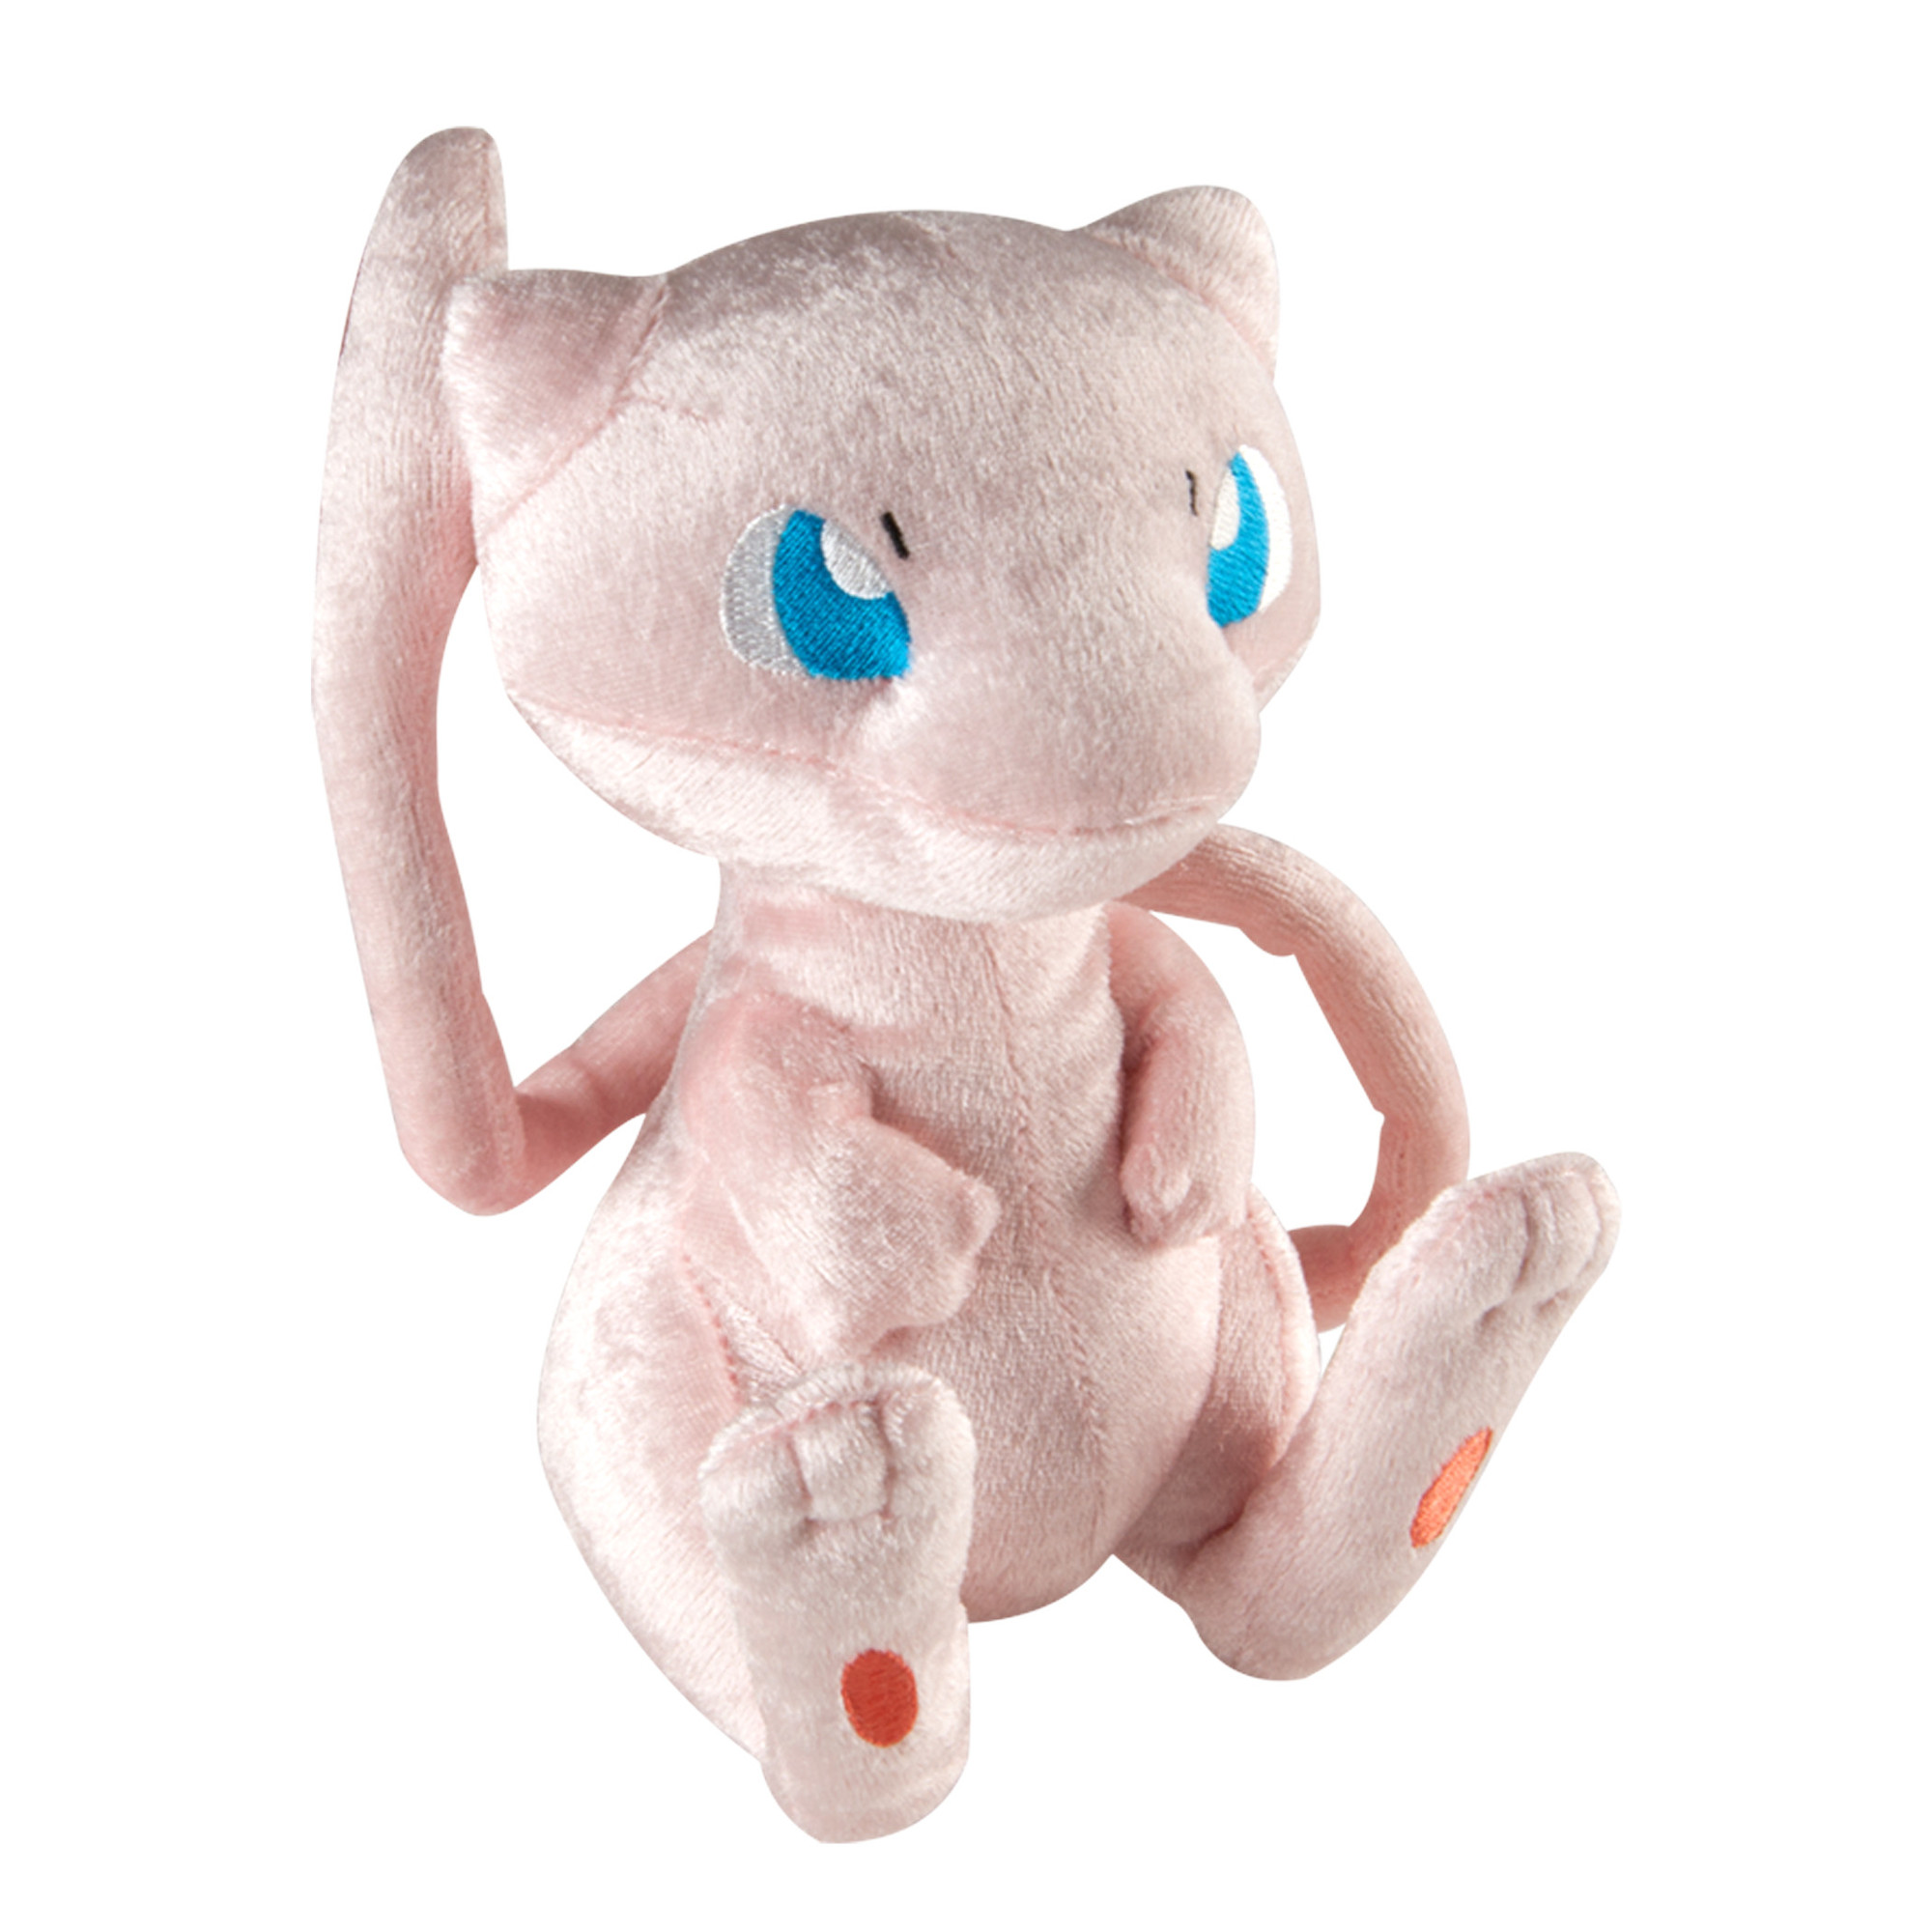 Mythical Mew Kicks Off Year Long Pokemon Distribution Events Vg247